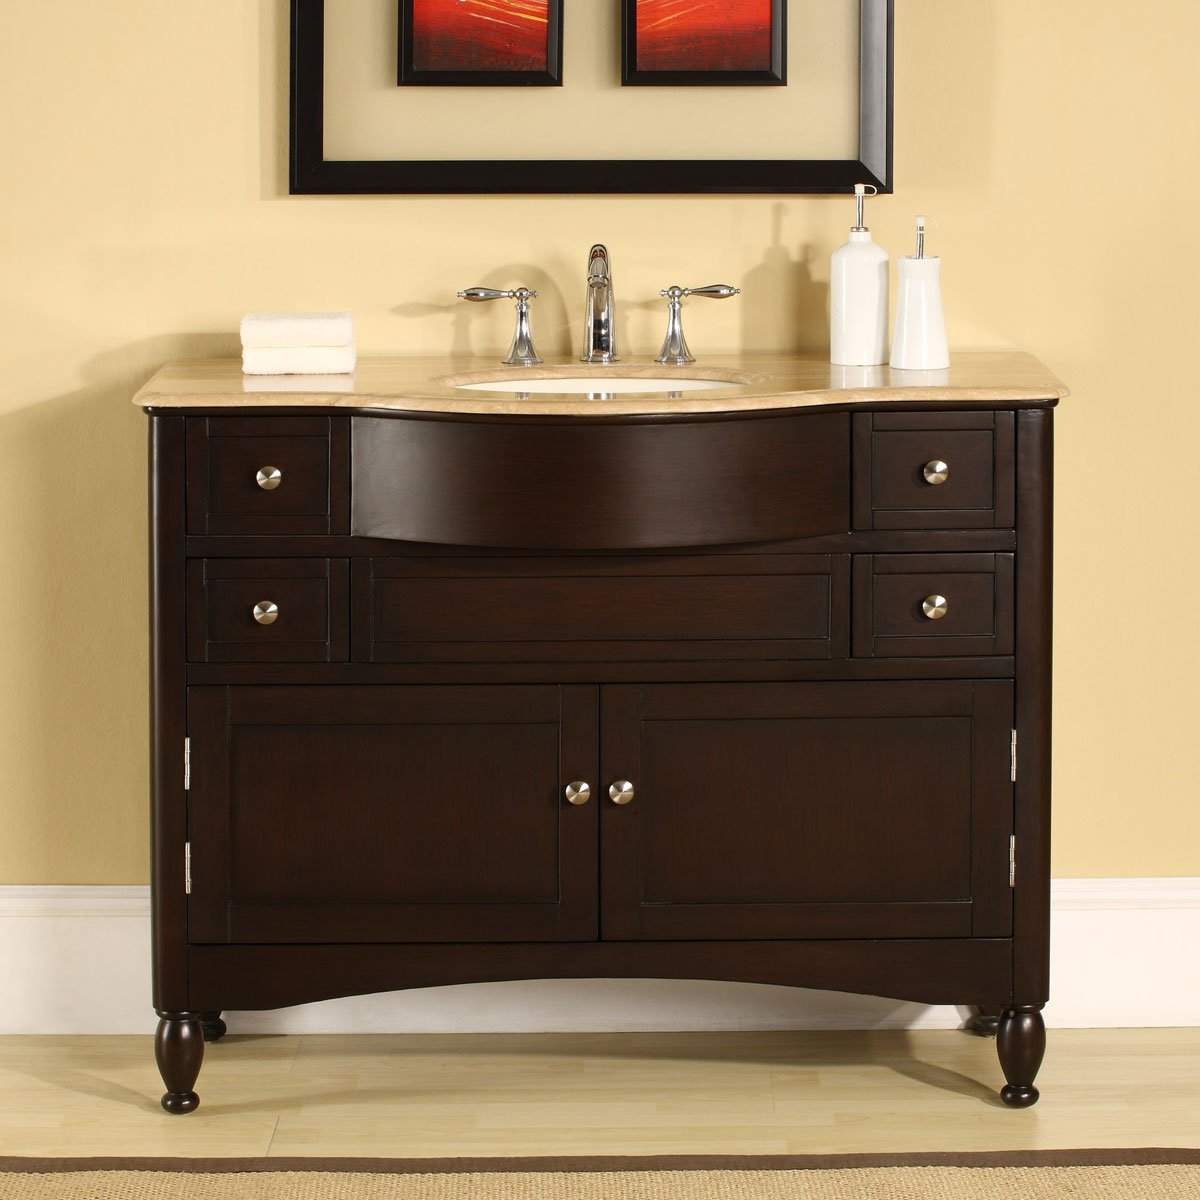 Silkroad Exclusive HYP-0717-T-UIC-45 Single Sink Bathroom Vanity with Dark Walnut Finish Bath Cabinet, 45 , Dark Wood